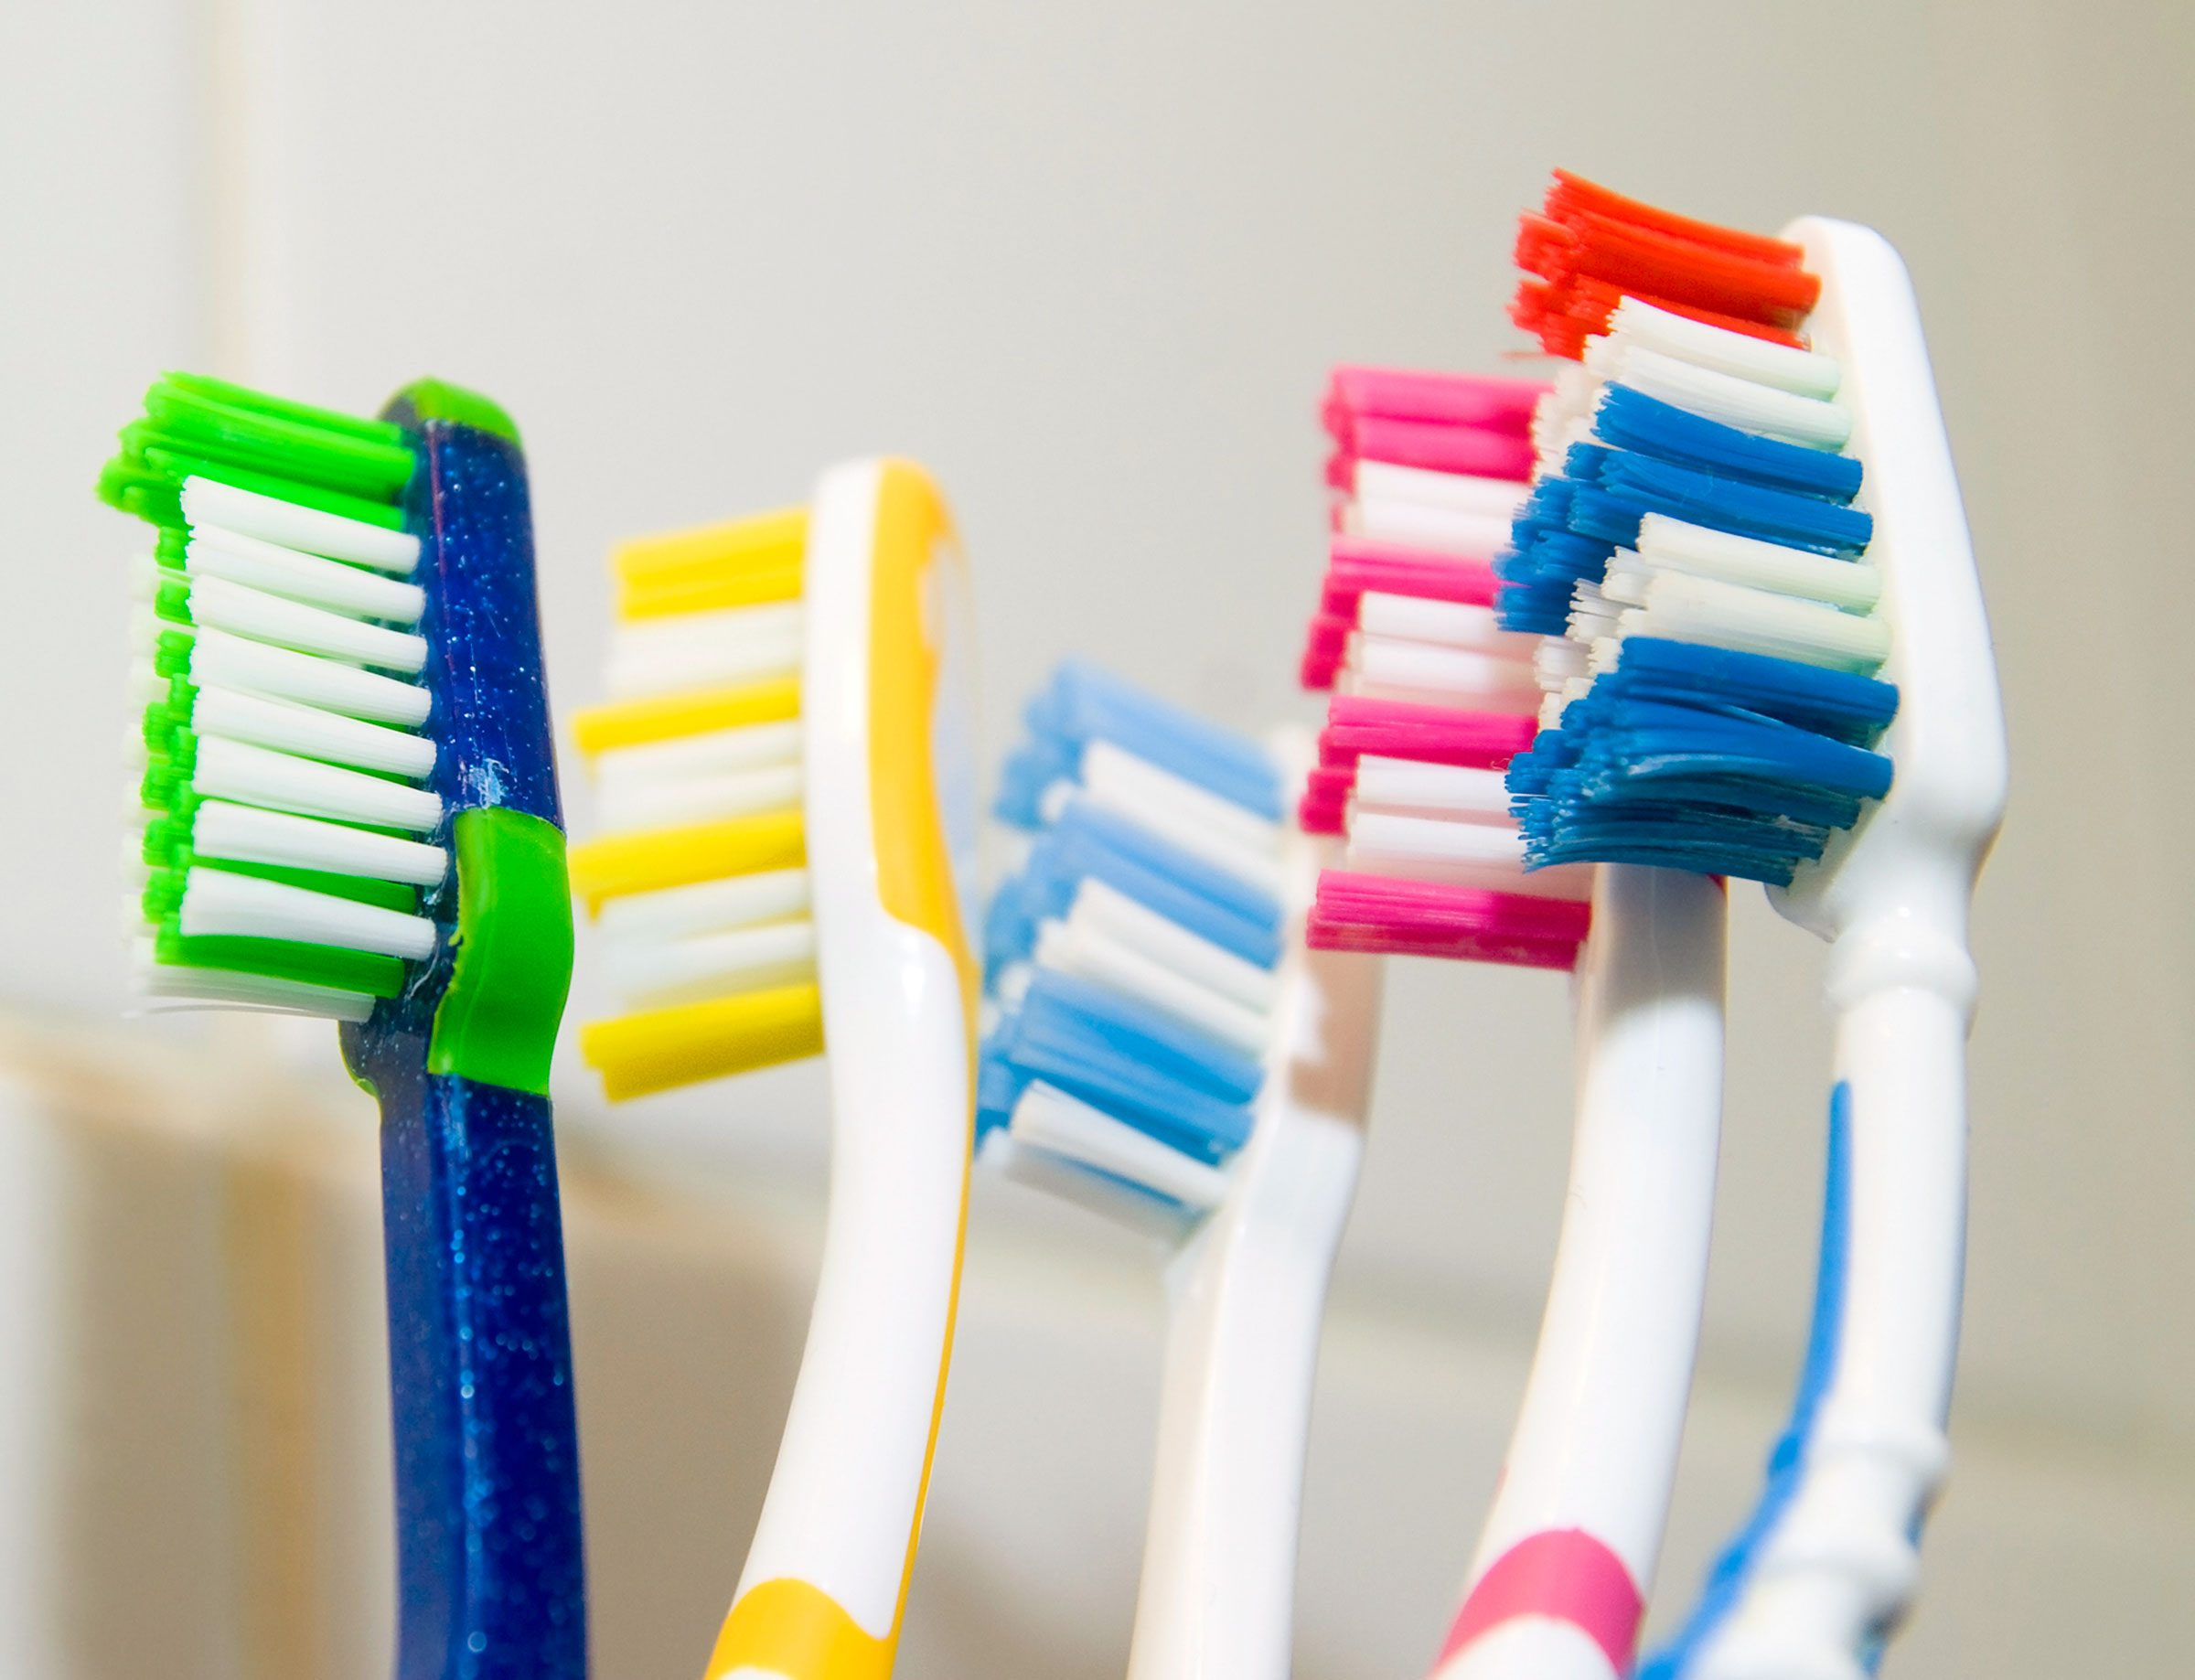 9:30 A.M.: Don't Screw Up Brushing Your Teeth